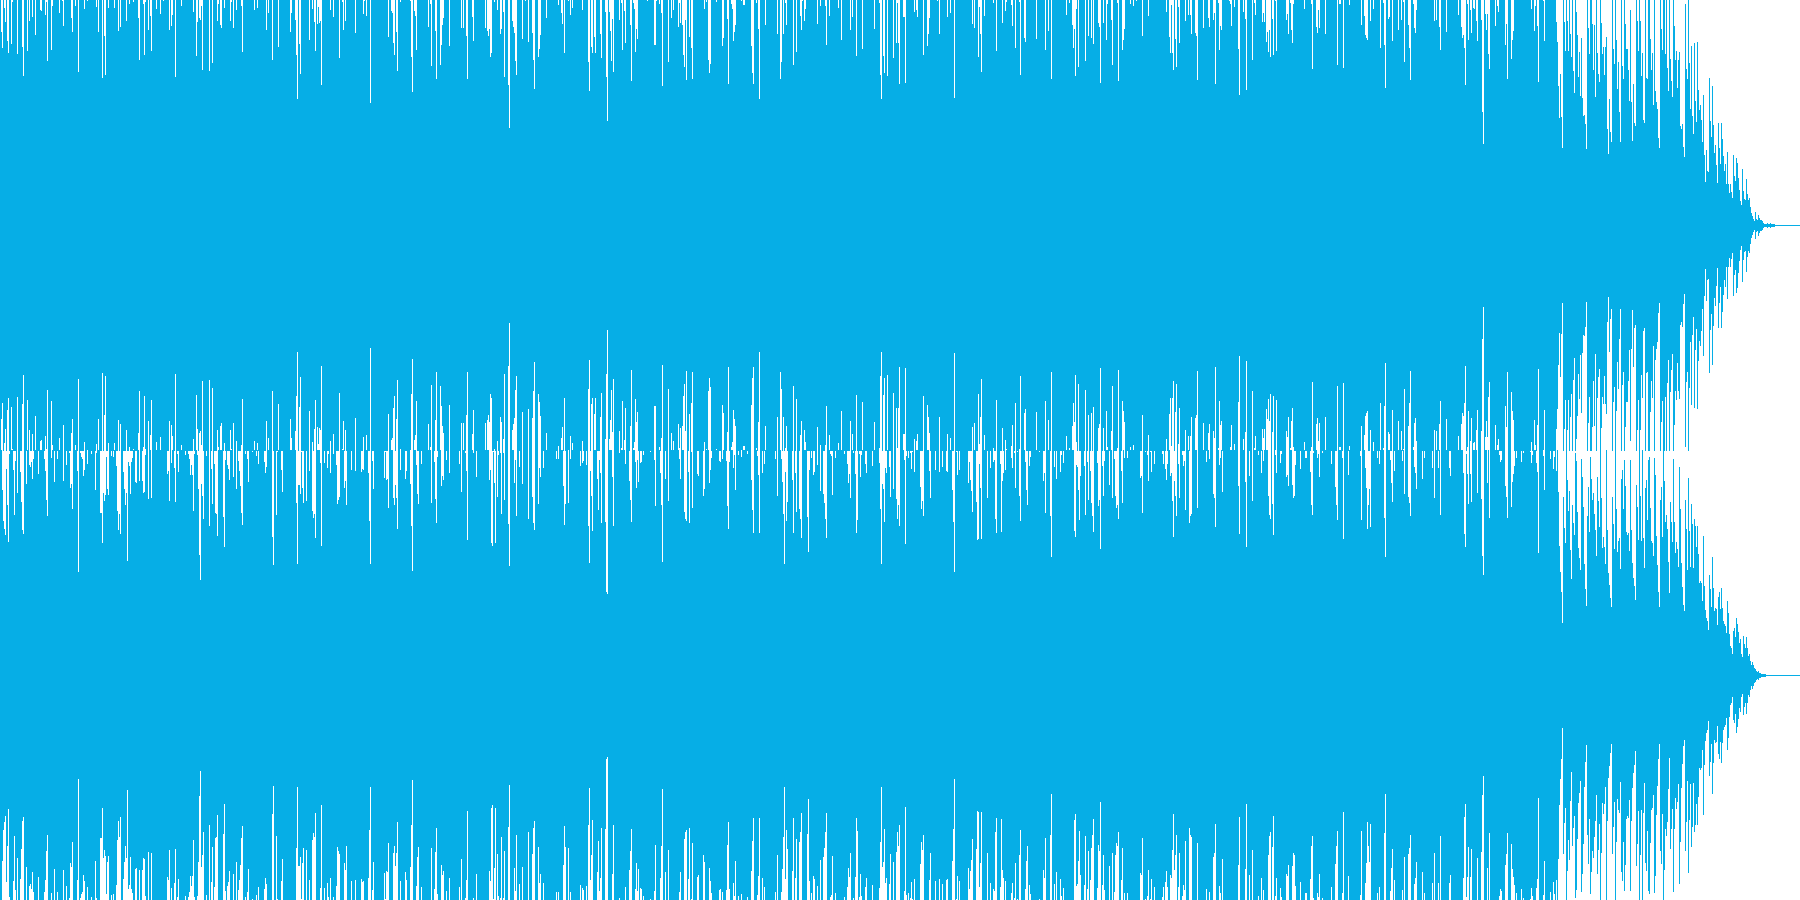 Commercial Music's reproduced waveform